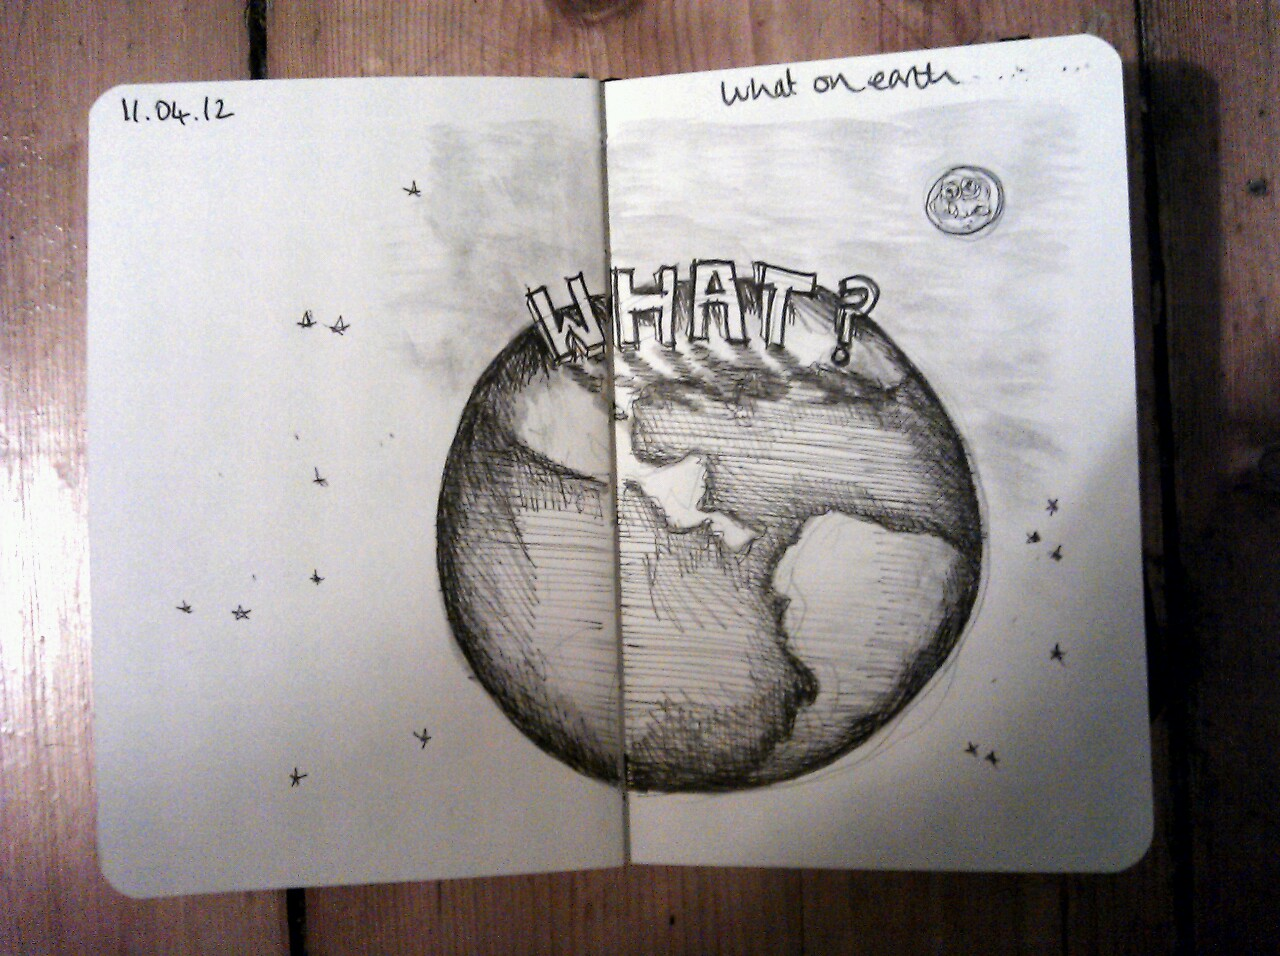 365 drawings later … day 71 … what on earth (its been a hard day)